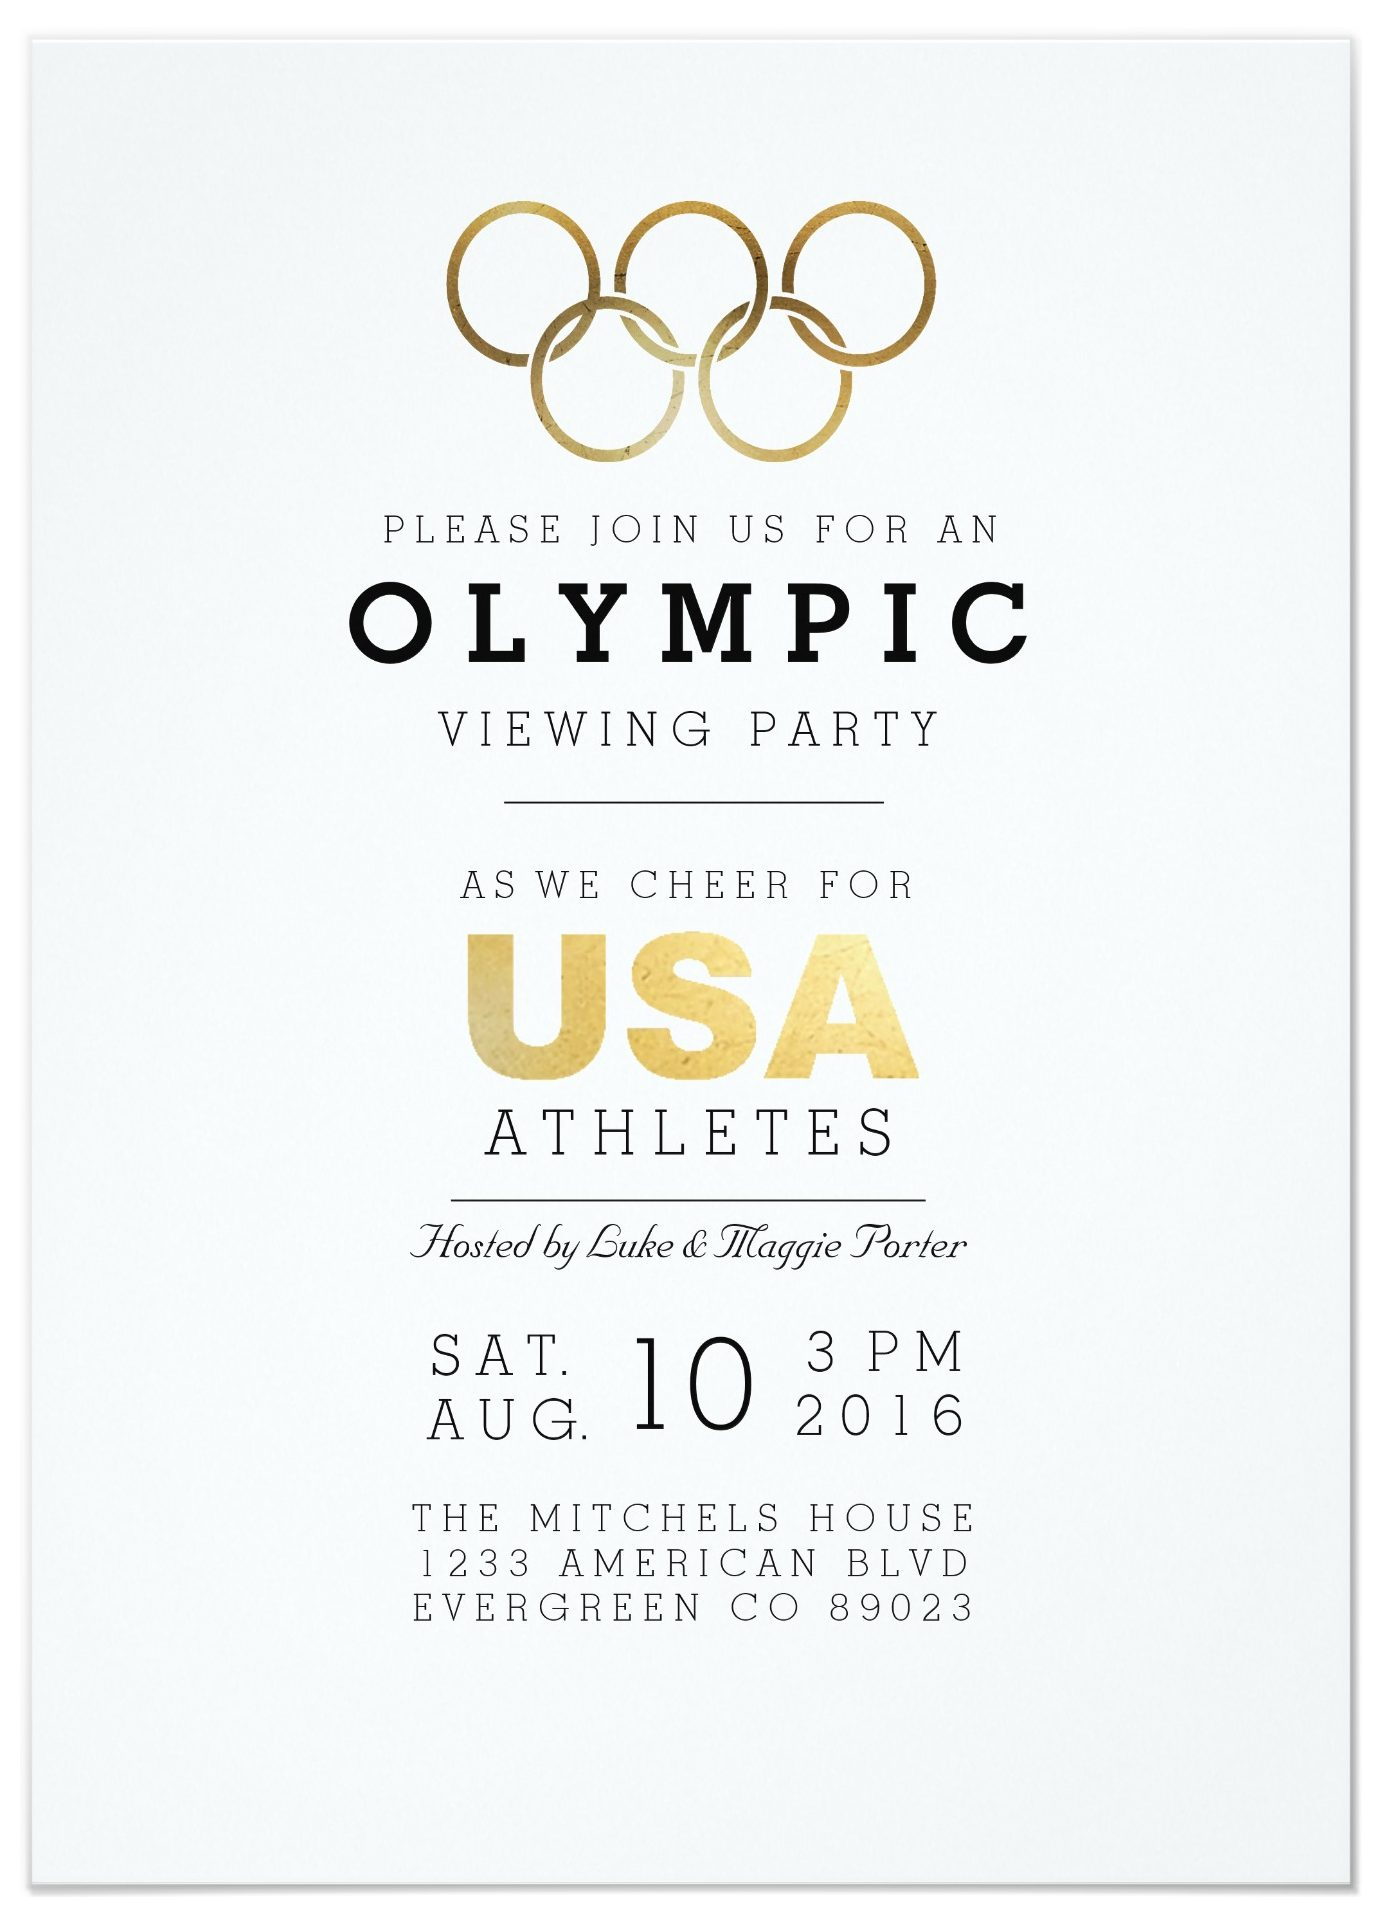 2016 Olympic Viewing Party Invitation